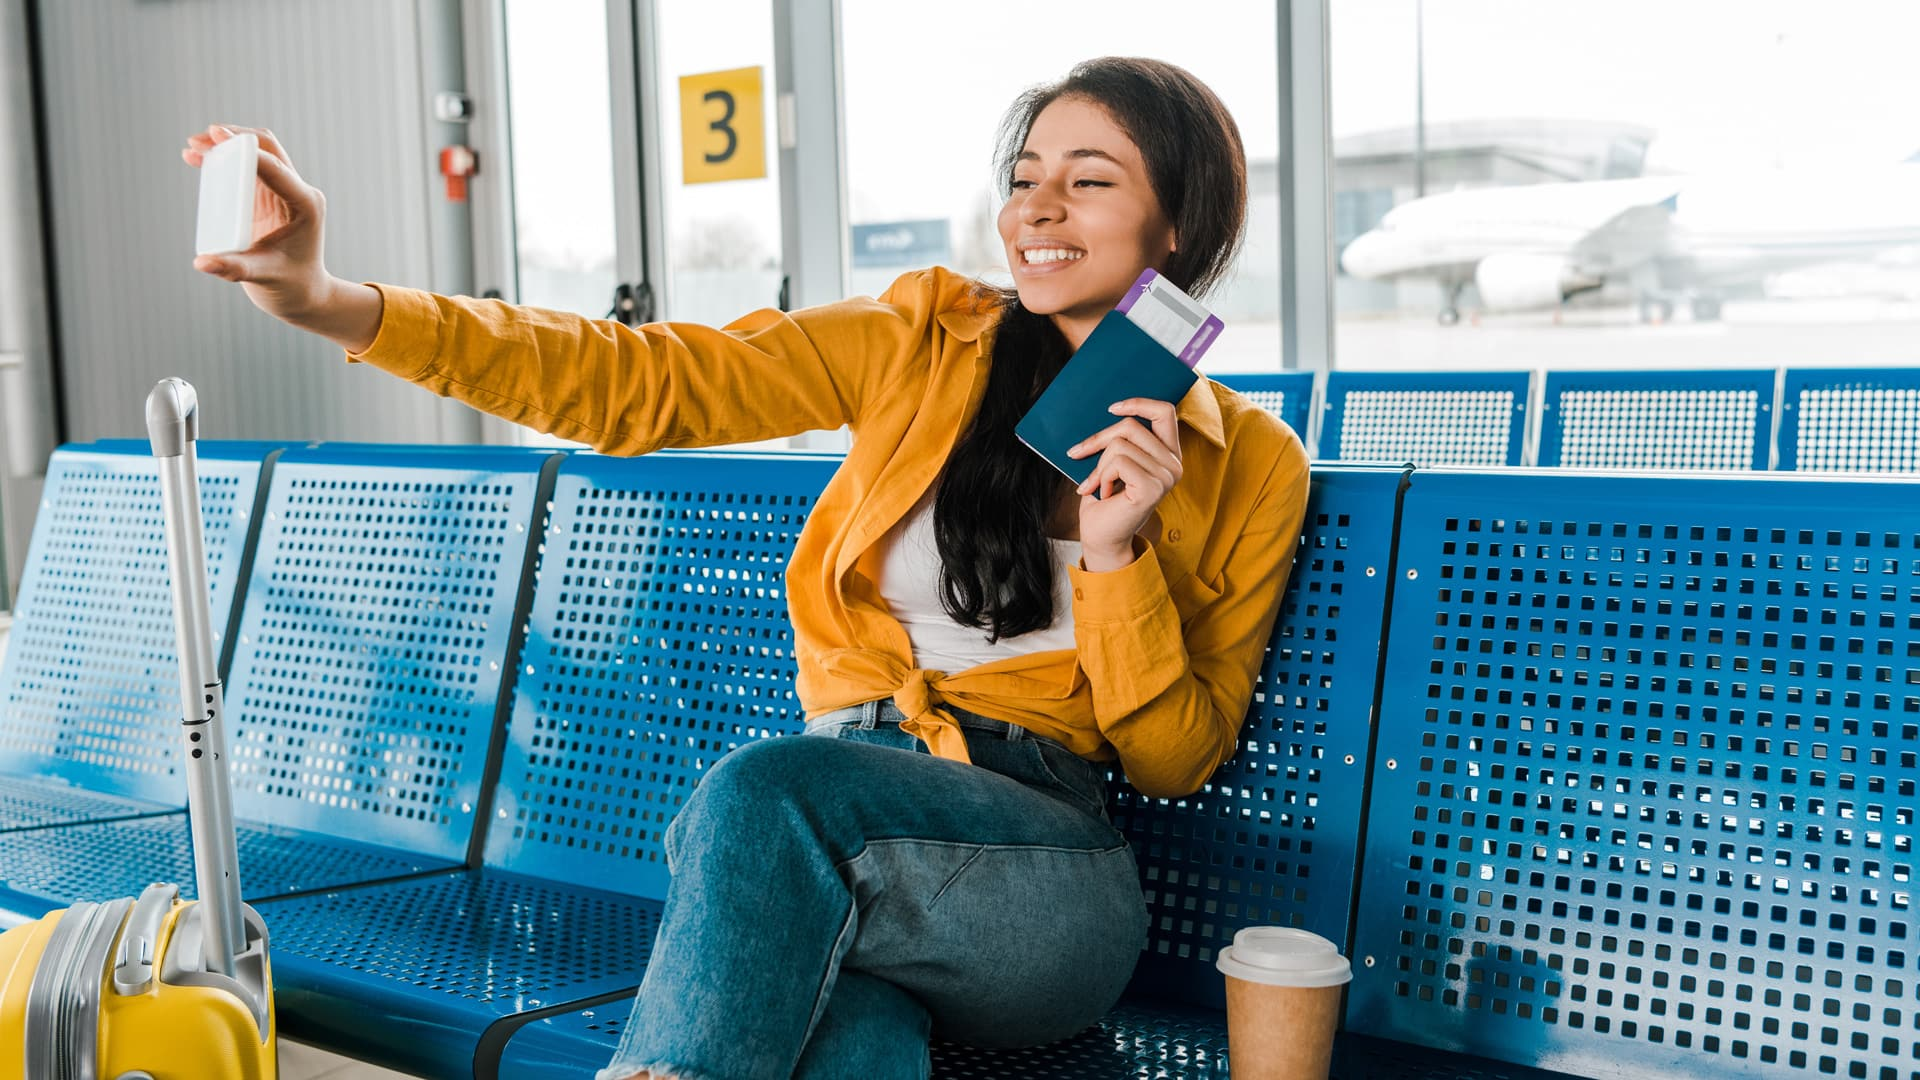 Ten Things You Should Never Do While Traveling Selfie